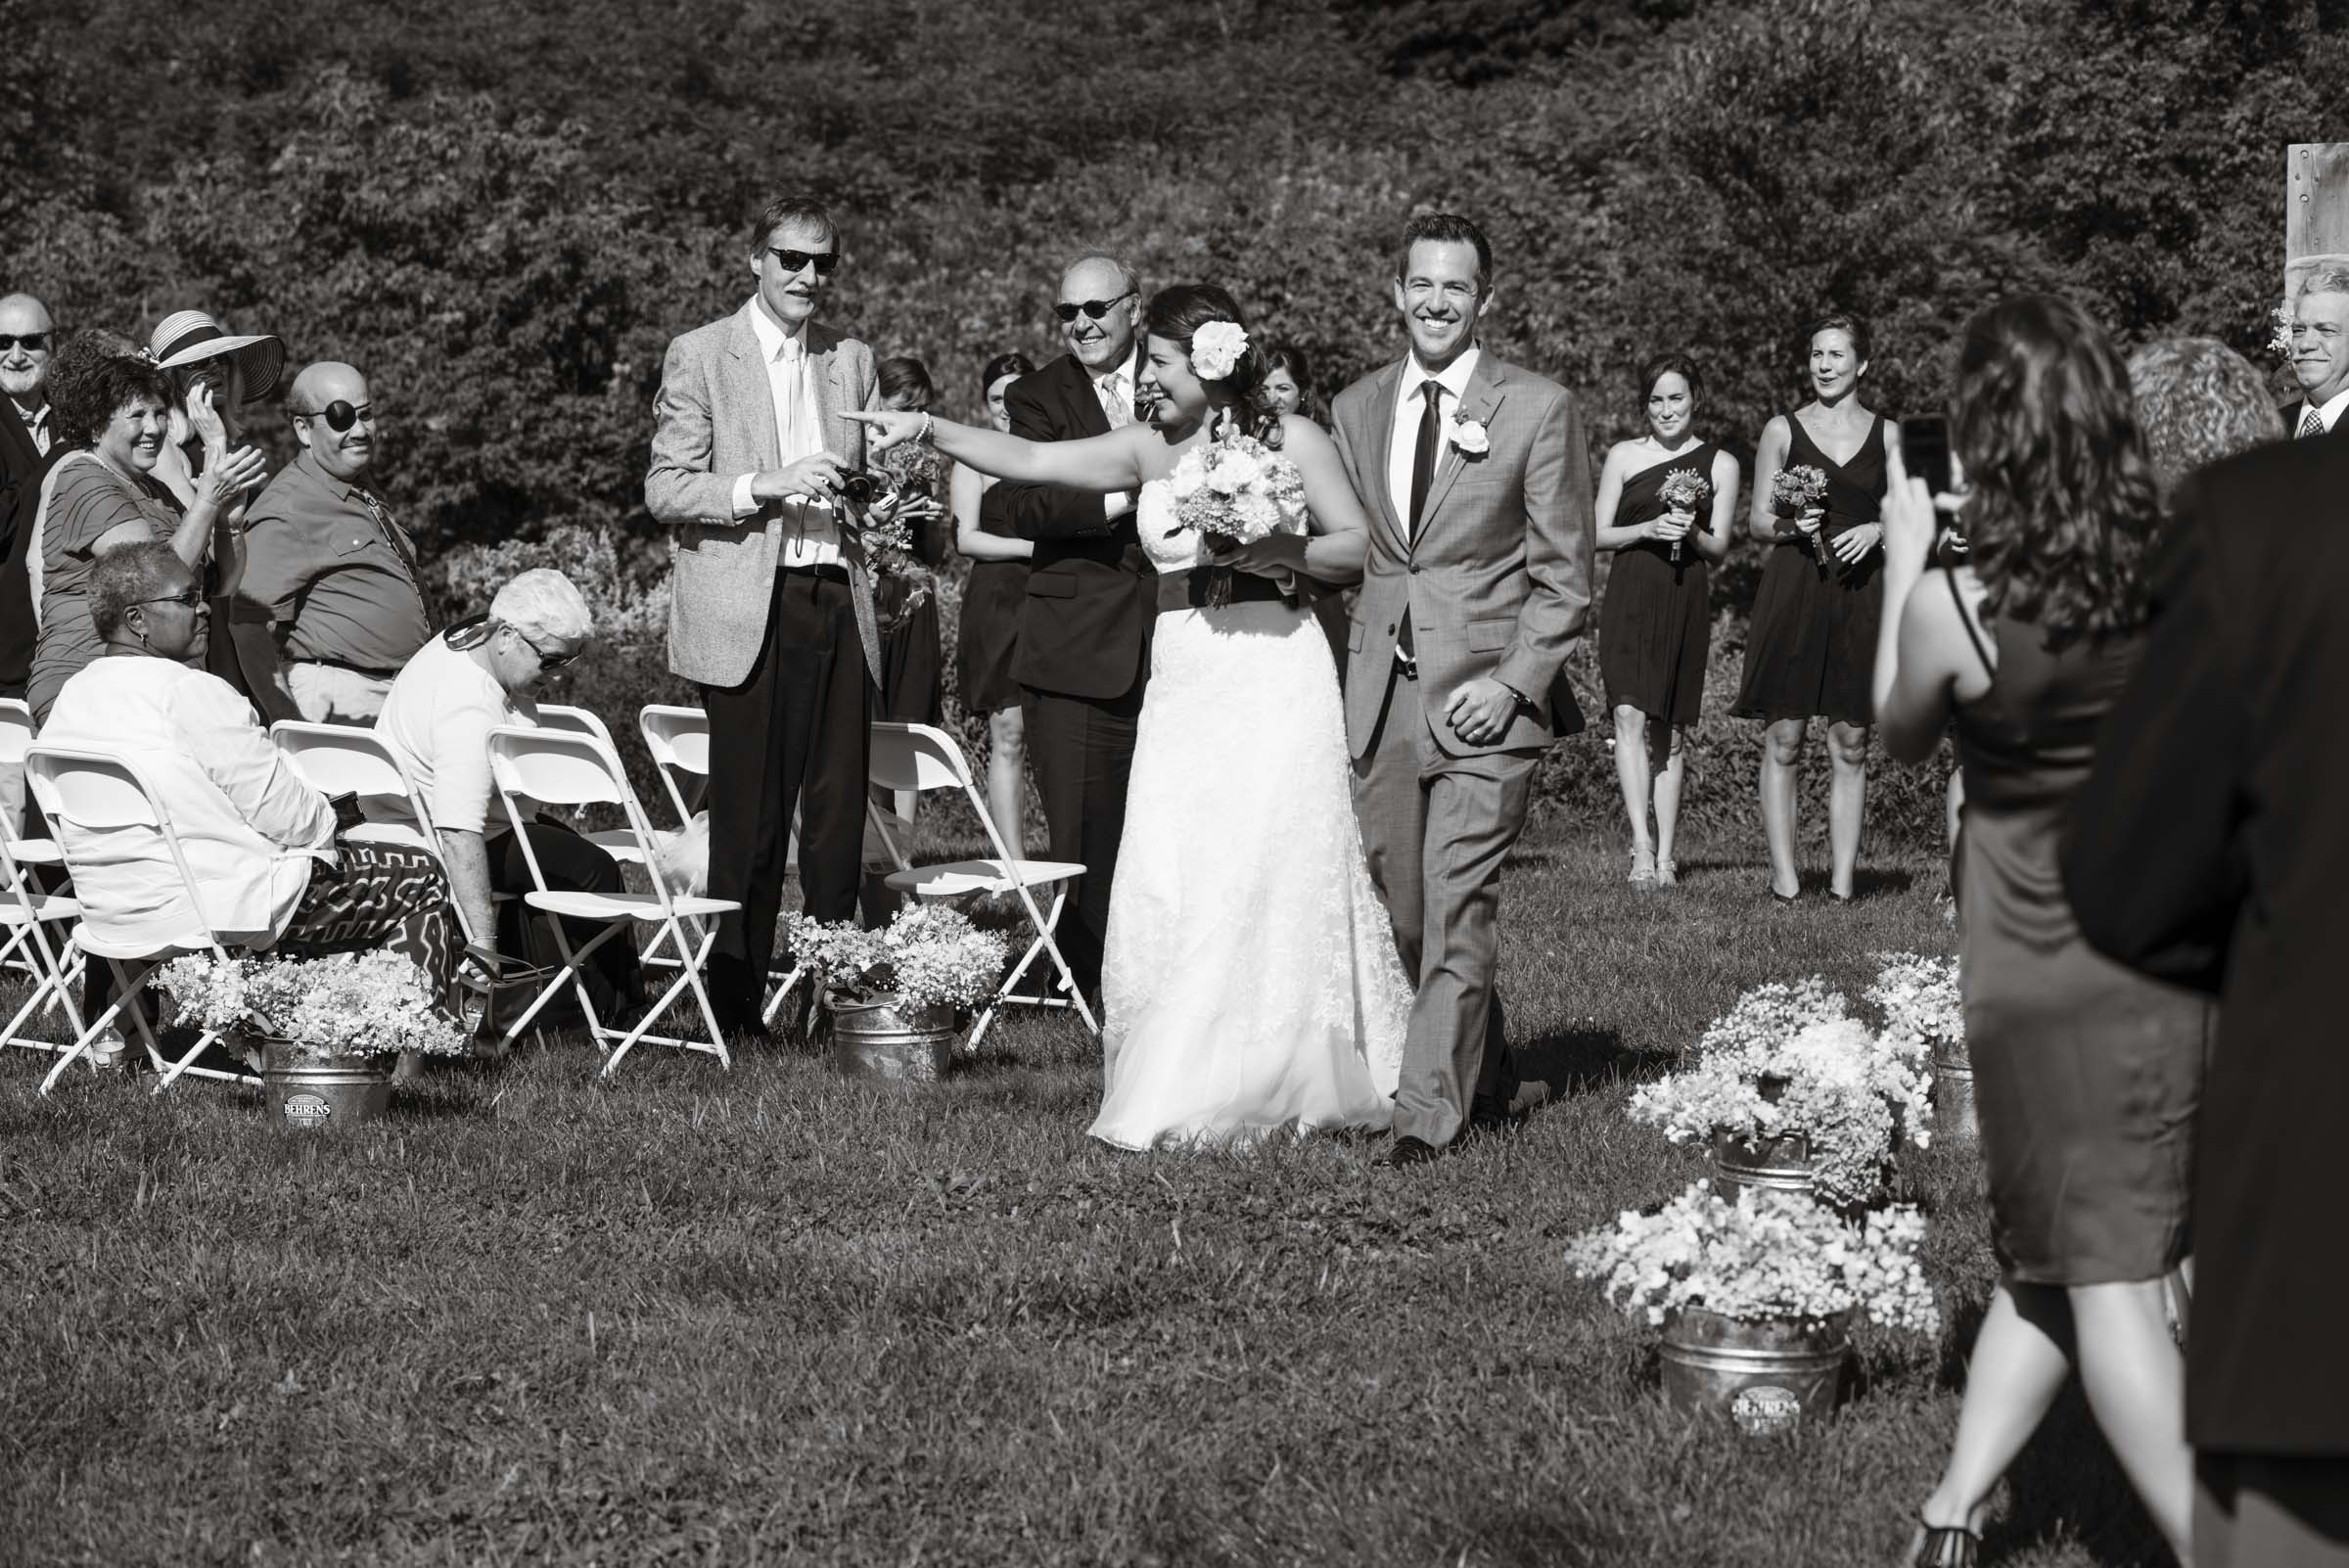 08232014-Chris&VanessaWedding-JuliaLuckettPhotography-198